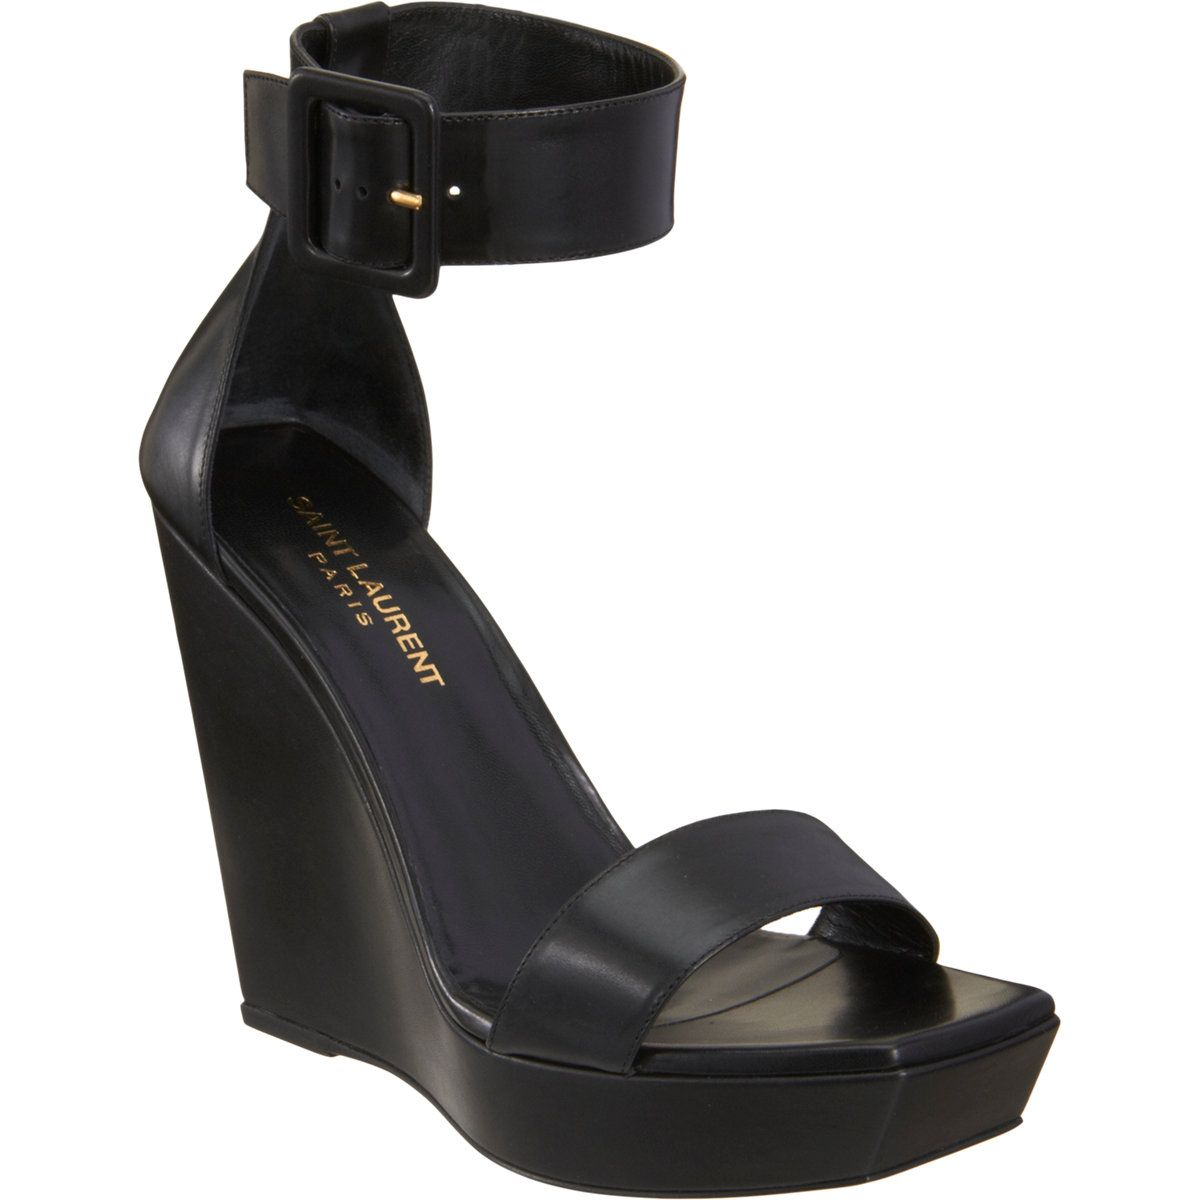 Saint Laurent Wedge Sandal at Barneys.com